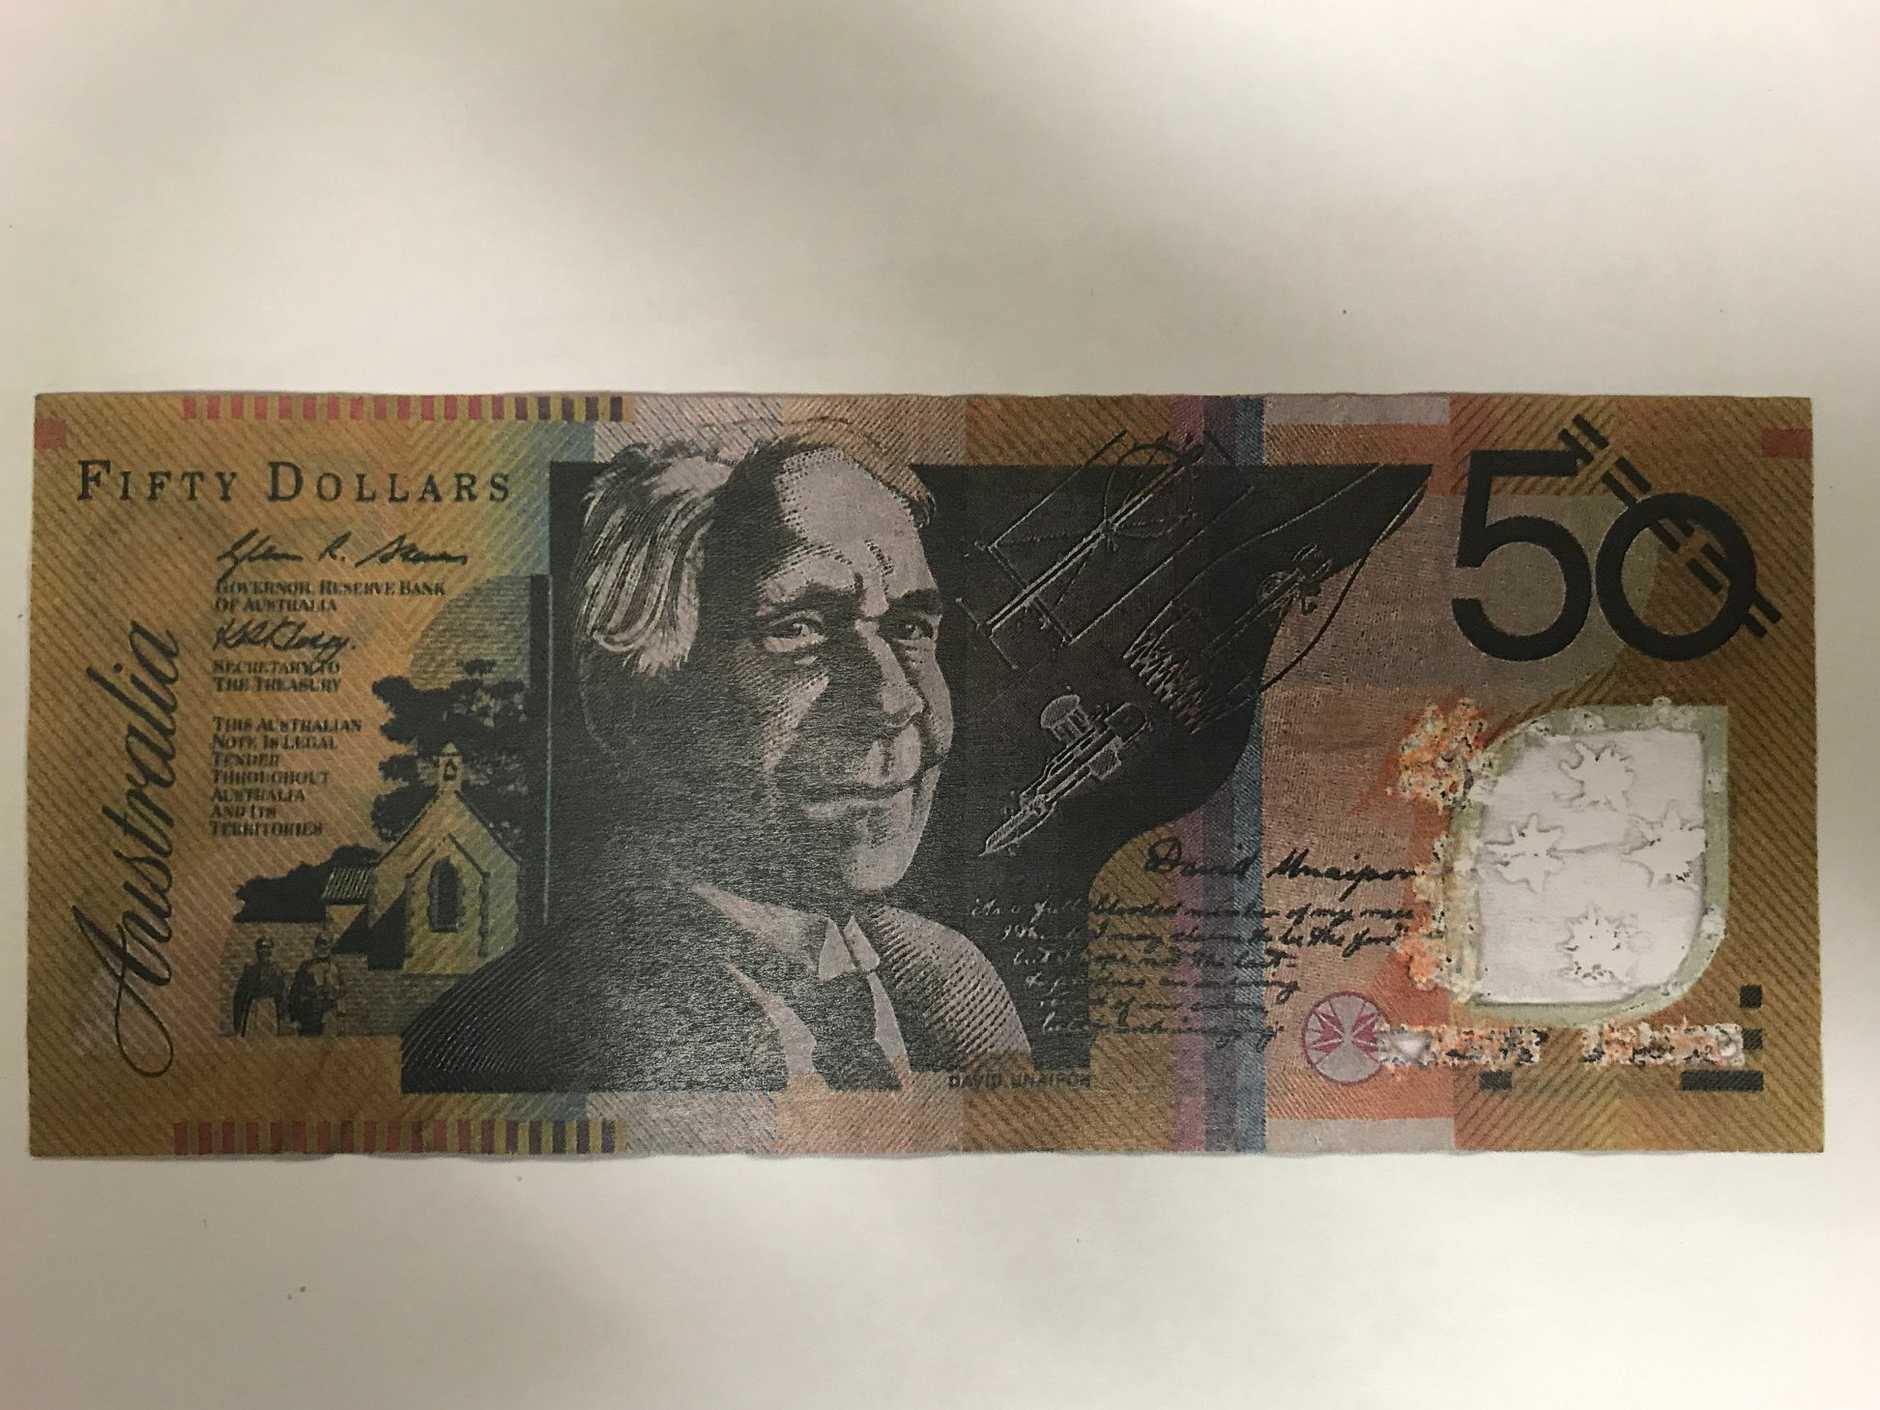 A man has been arrested after the alleged use of counterfeit money in Warwick.